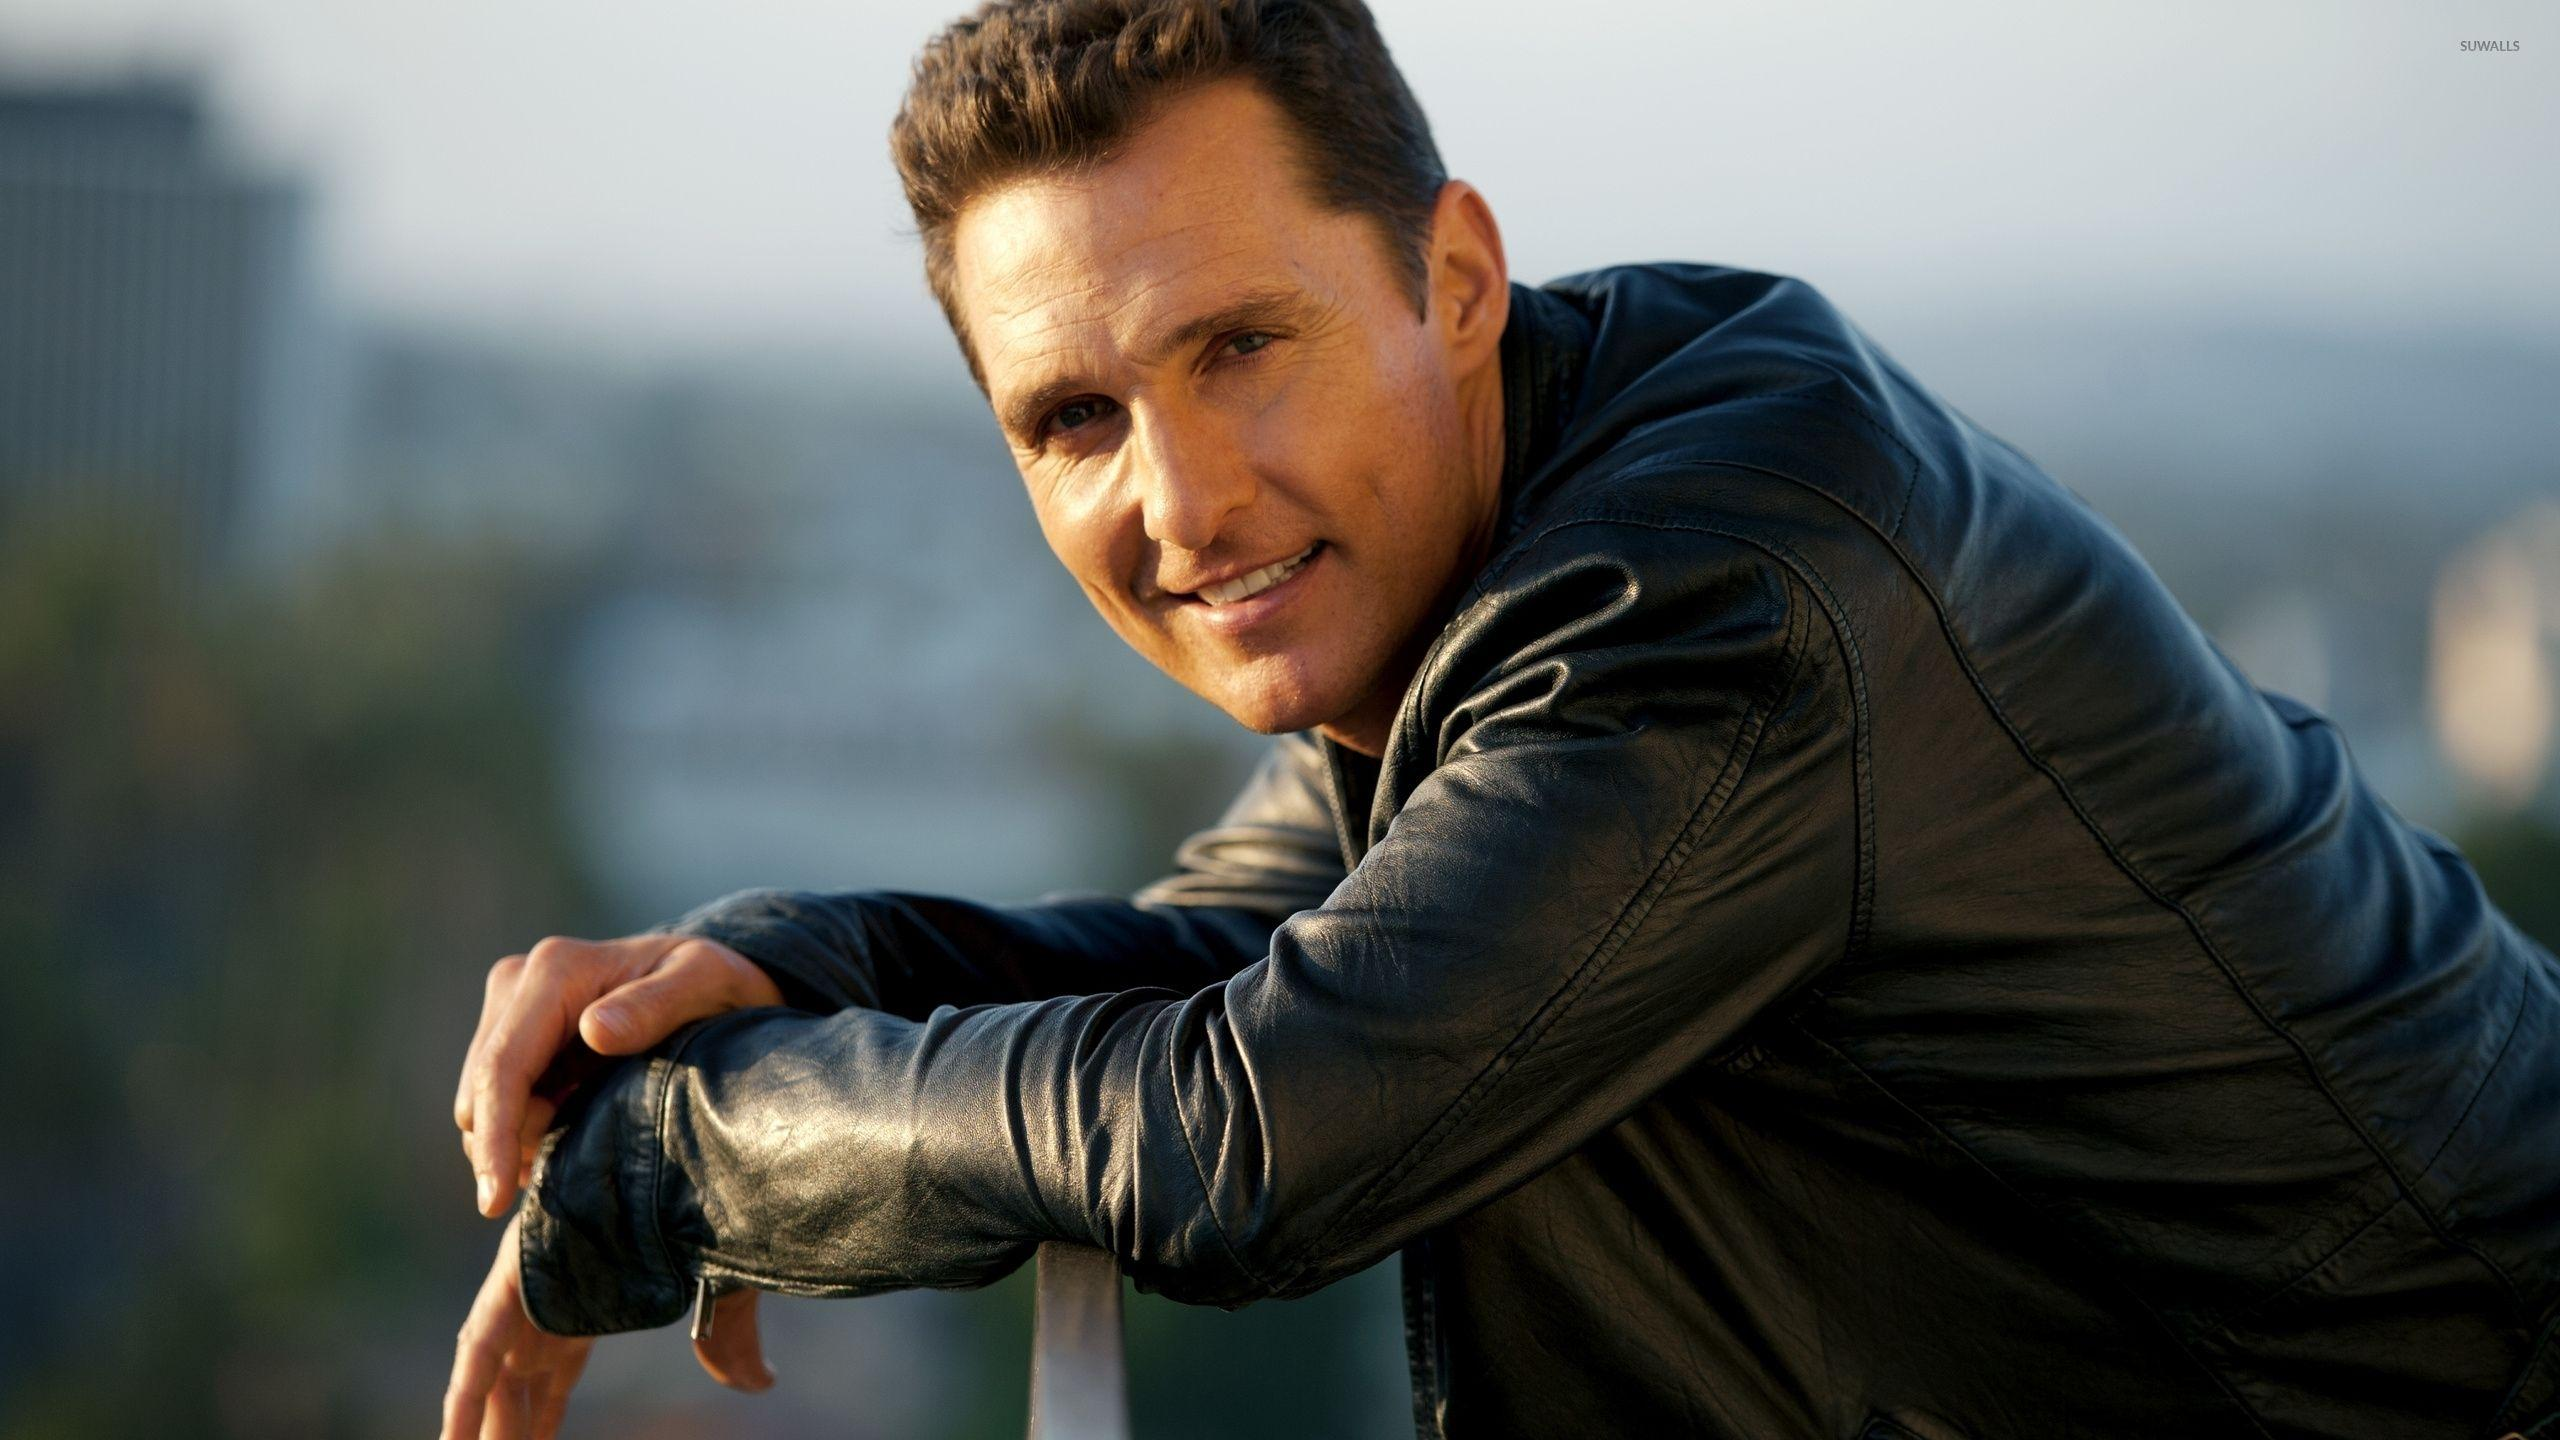 Matthew McConaughey in a black leather jacket wallpapers